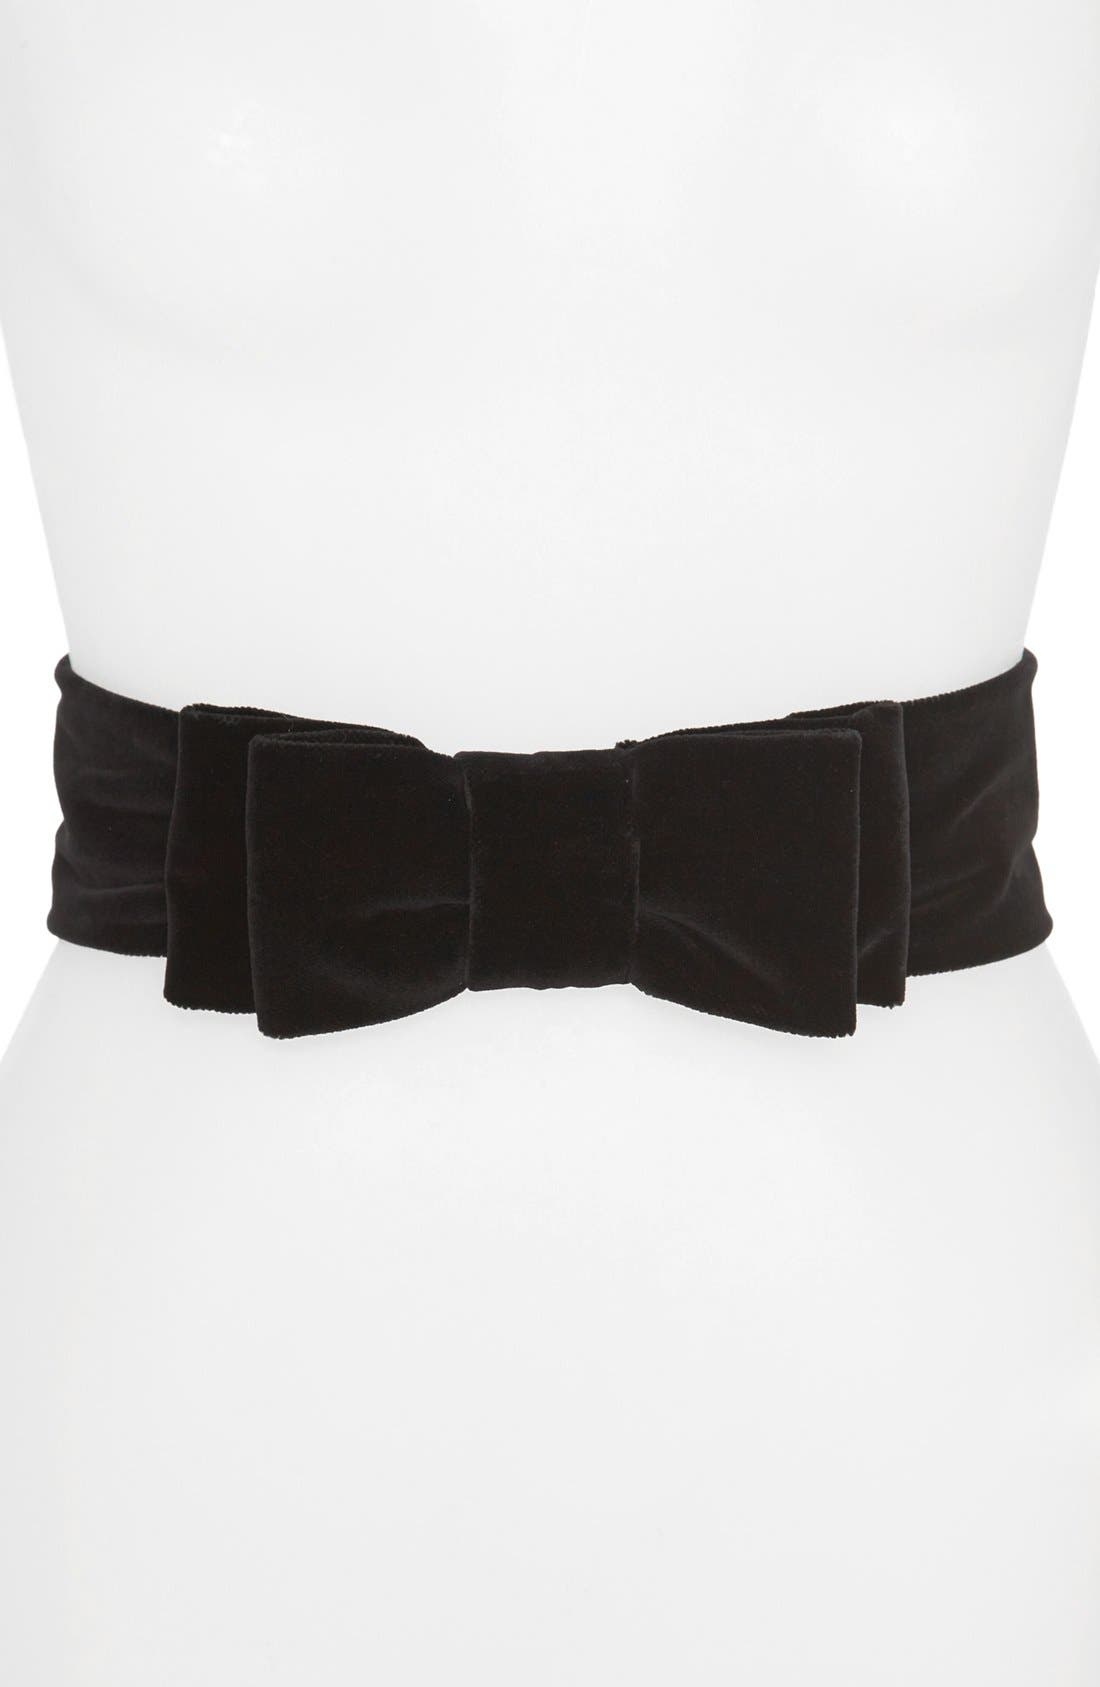 Alternate Image 1 Selected - kate spade new york 'velvet double bow' belt